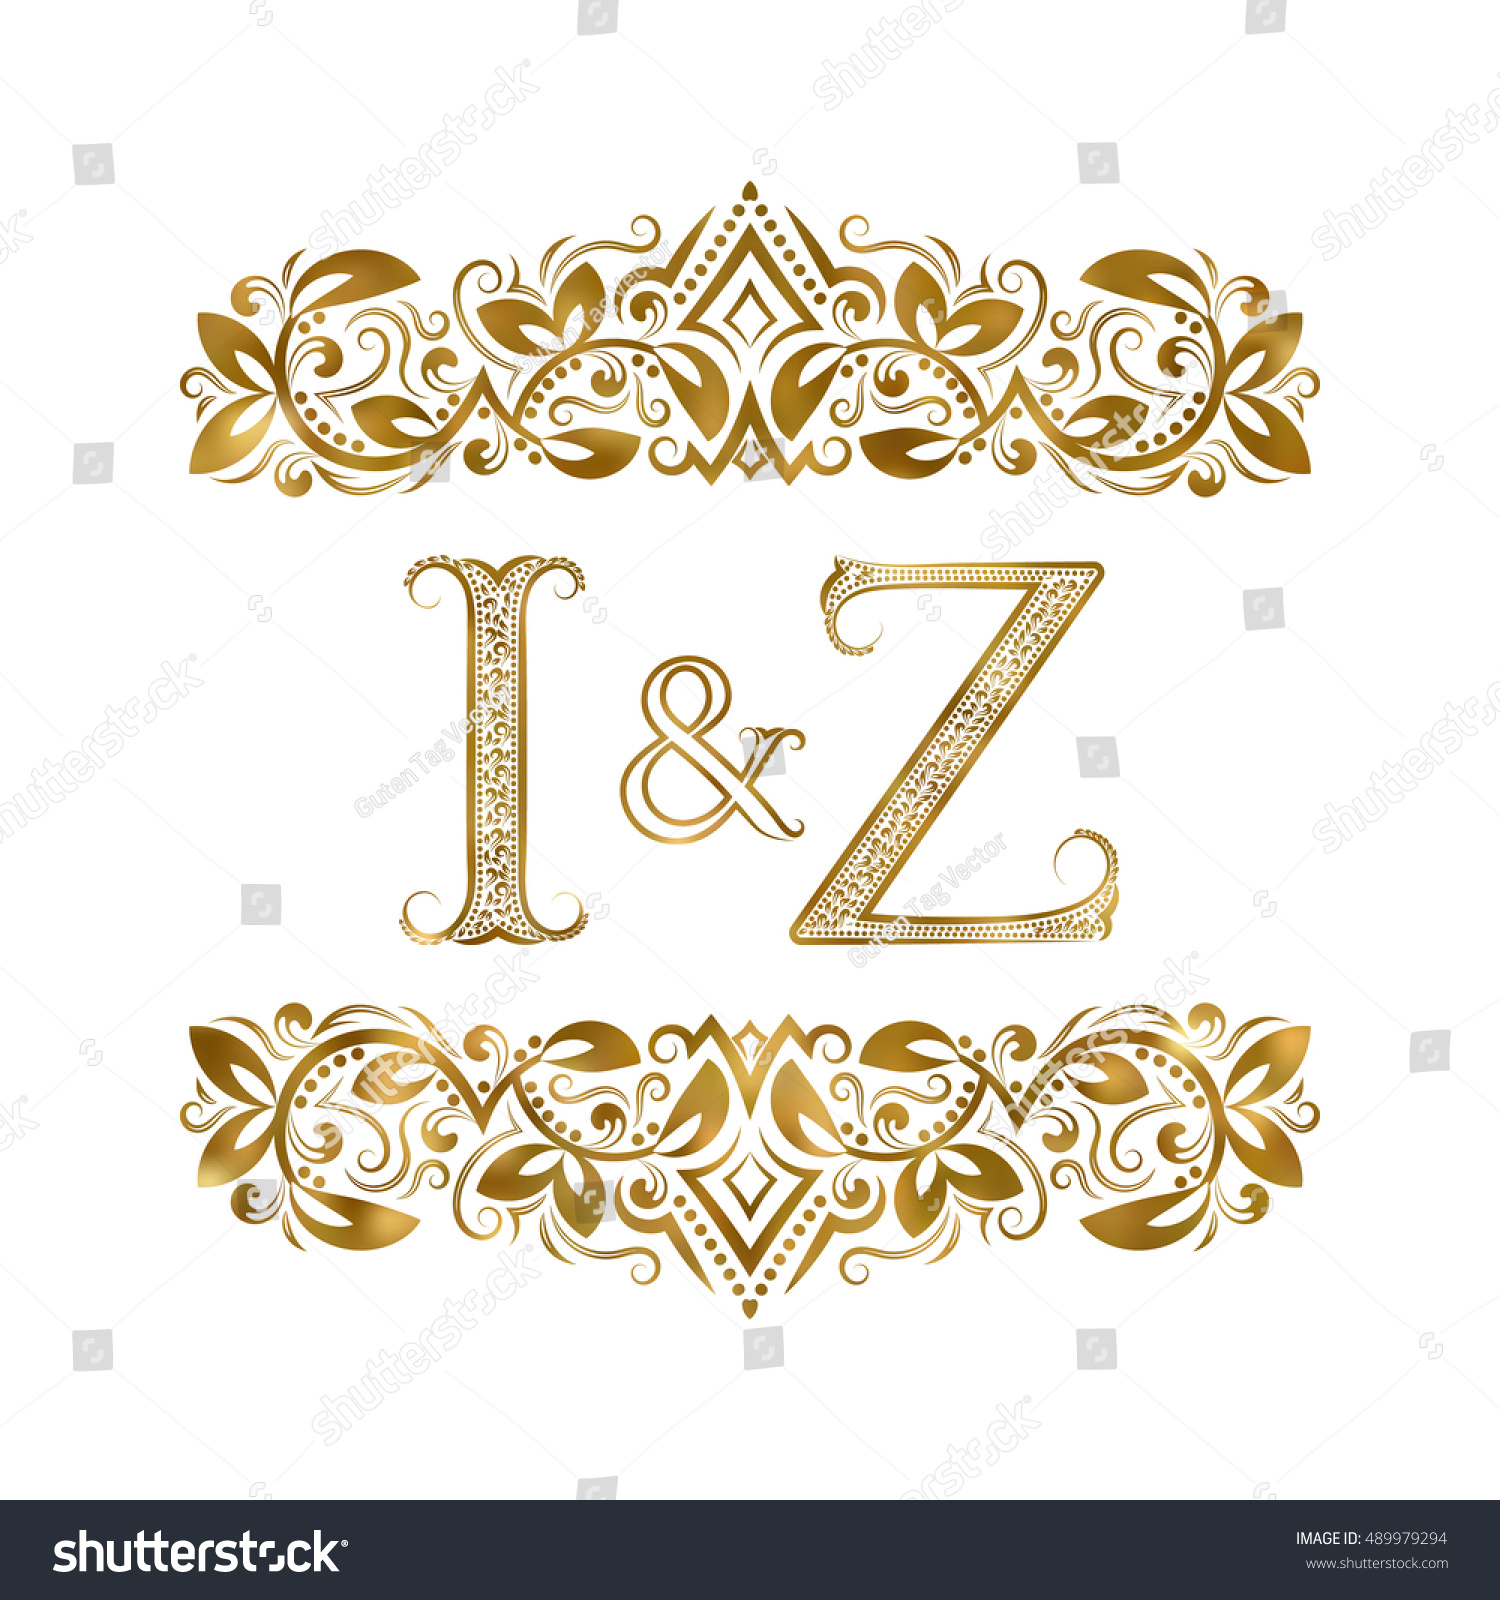 Z vintage initials logo symbol letters stock vector 489979294 i and z vintage initials logo symbol the letters are surrounded by ornamental elements biocorpaavc Choice Image